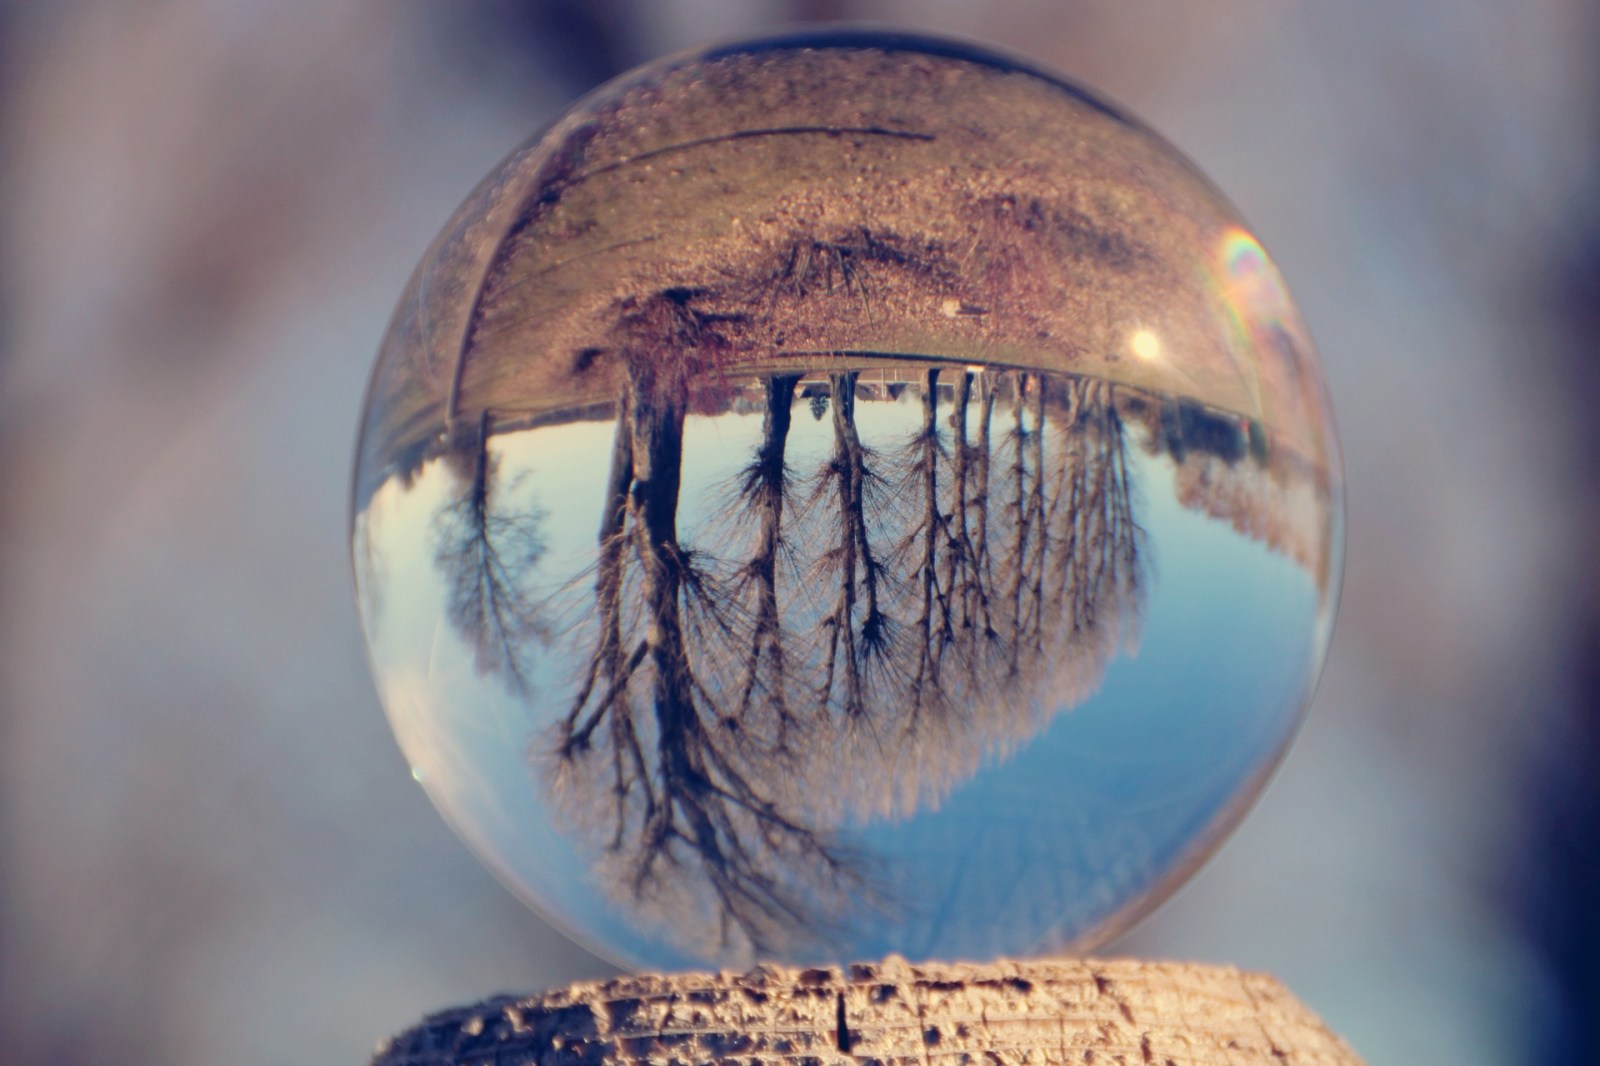 upside-down-glass-ball